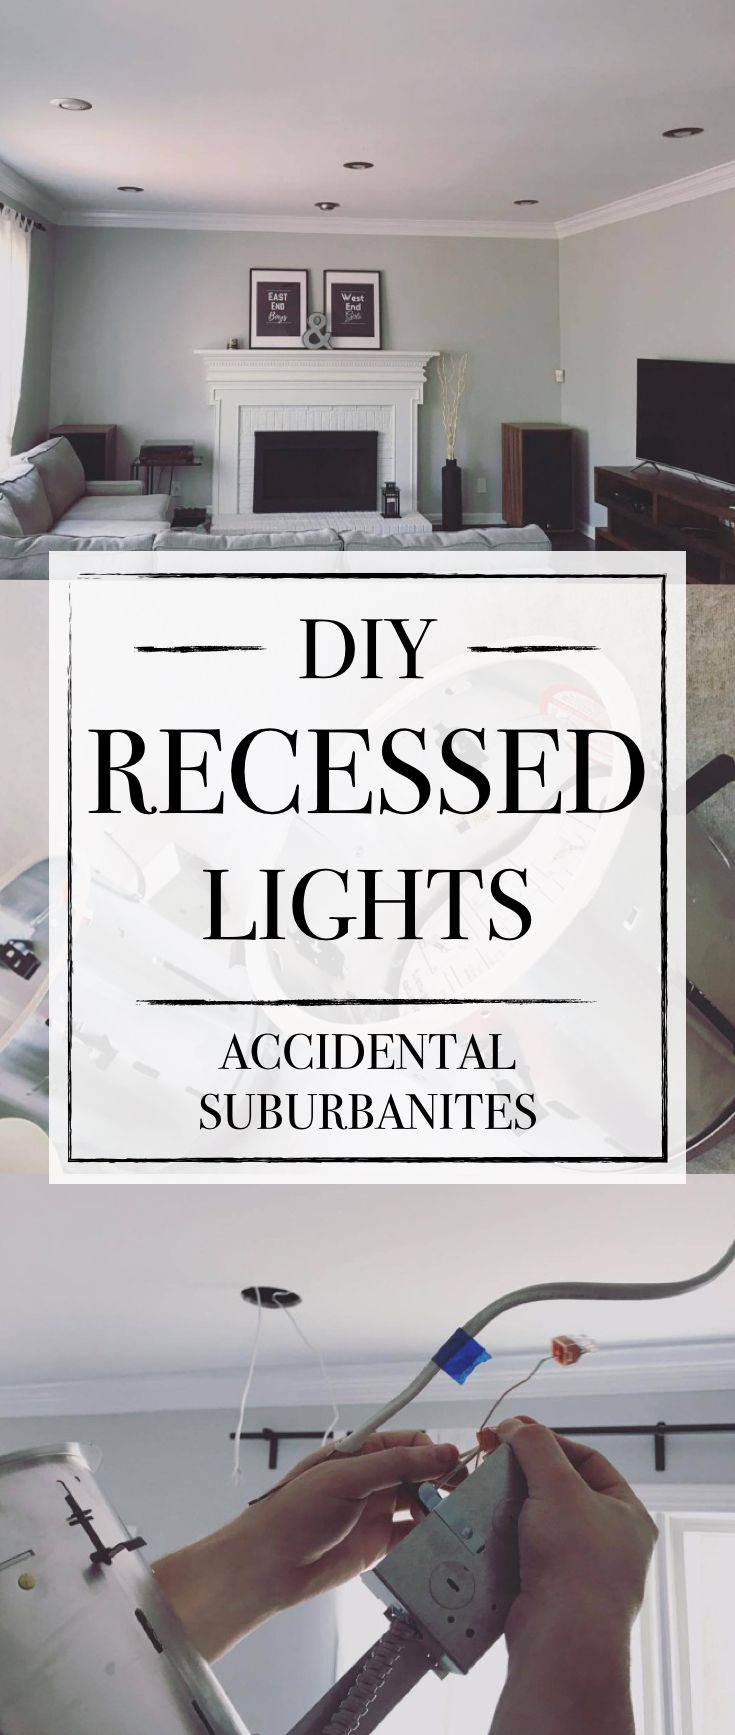 DIY Recessed Lighting - how to install recessed lights with no attic ...